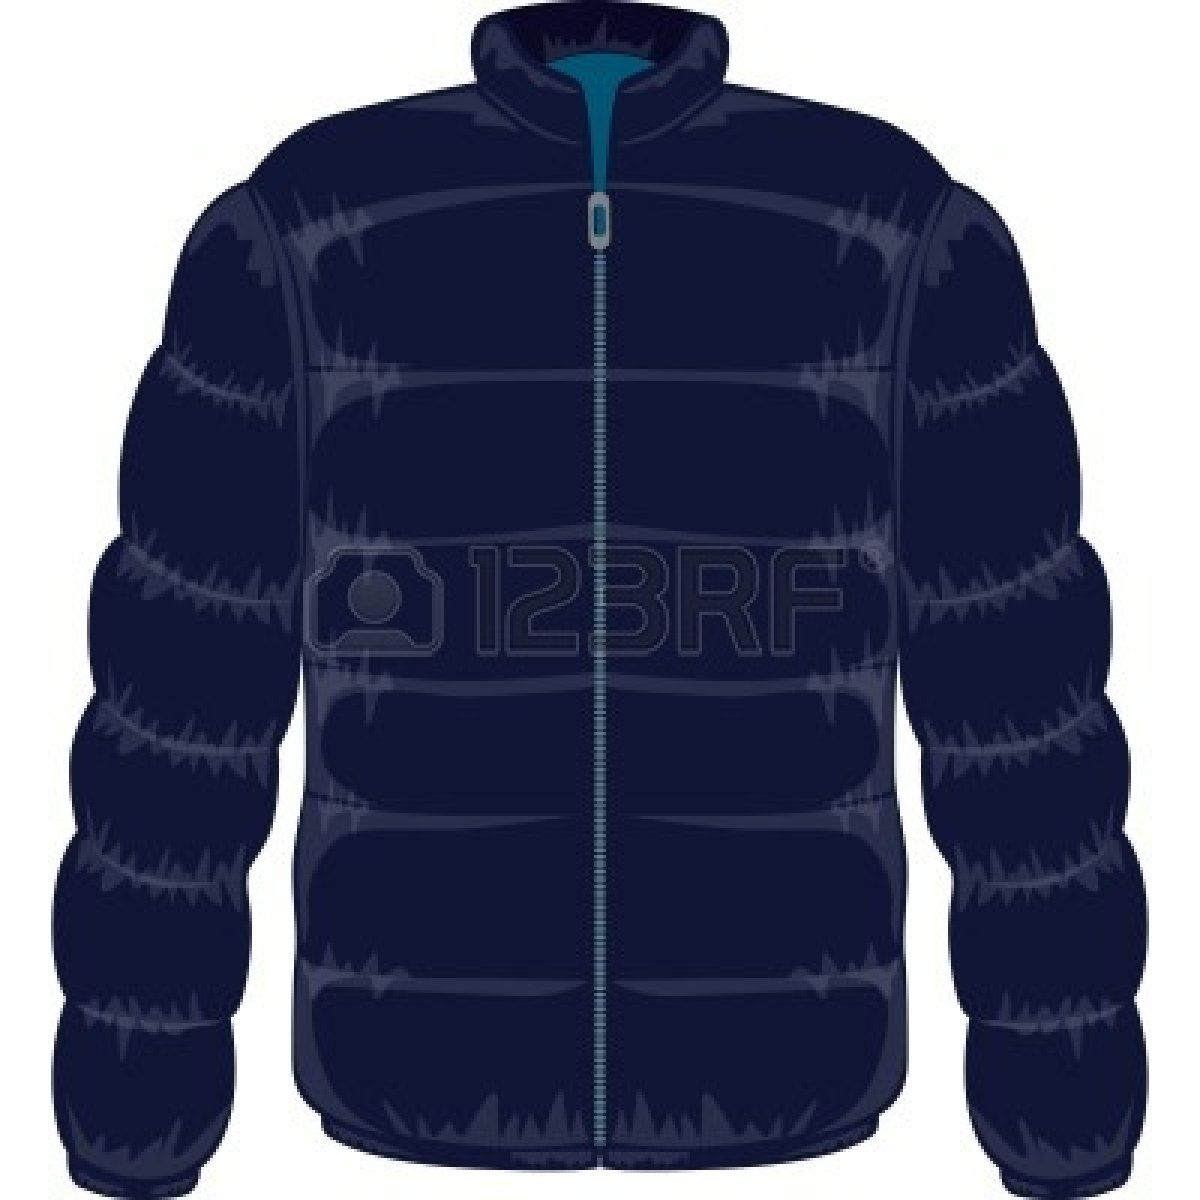 Sweater Clothing Clip Art